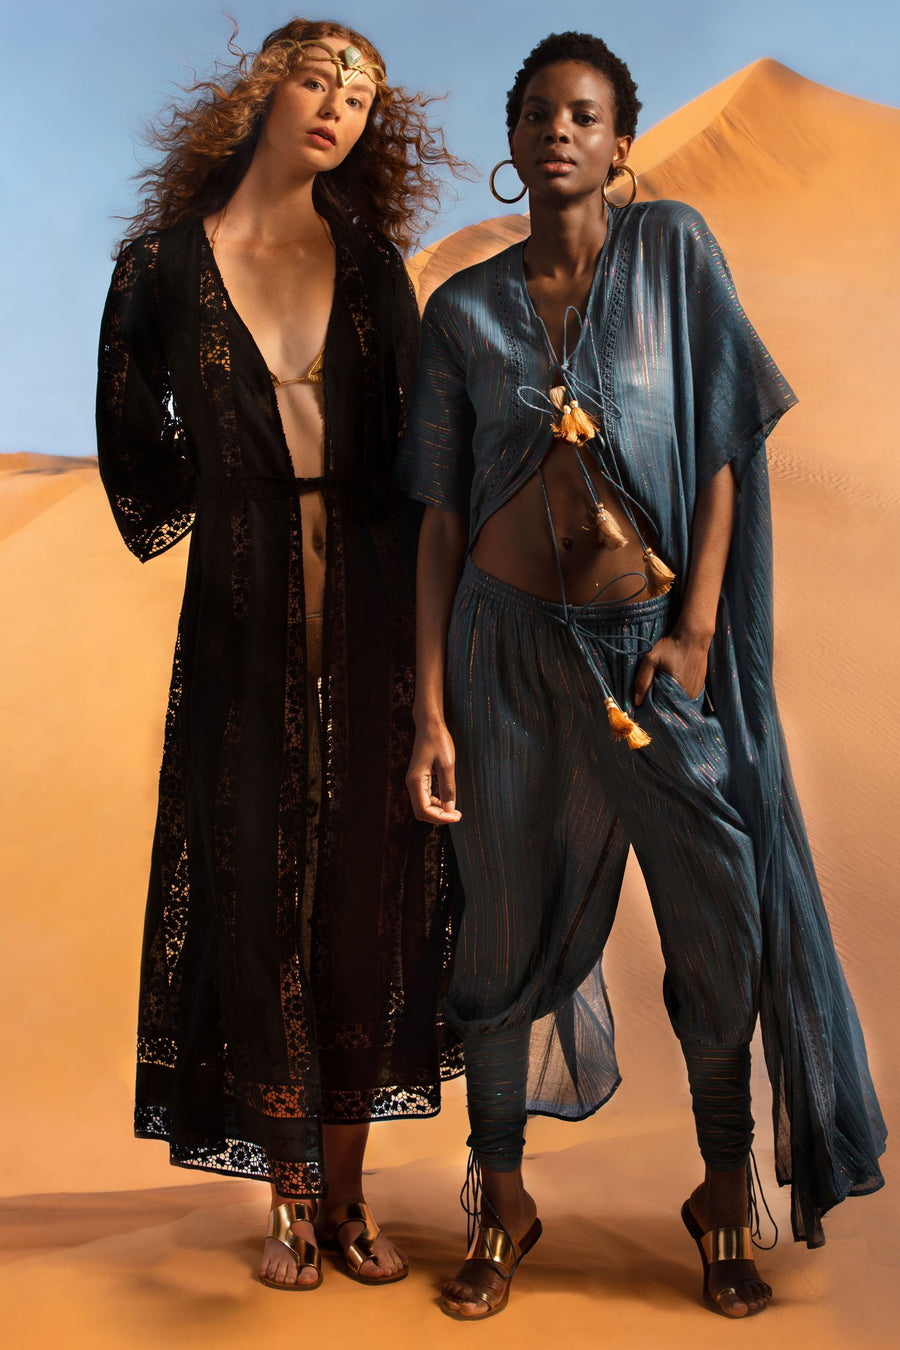 This is a photo of two women standing together. One wears an open black wrap lace coat over a gold bikini and the other wears a blue cotton gauze coat and pants with metallic detailing.